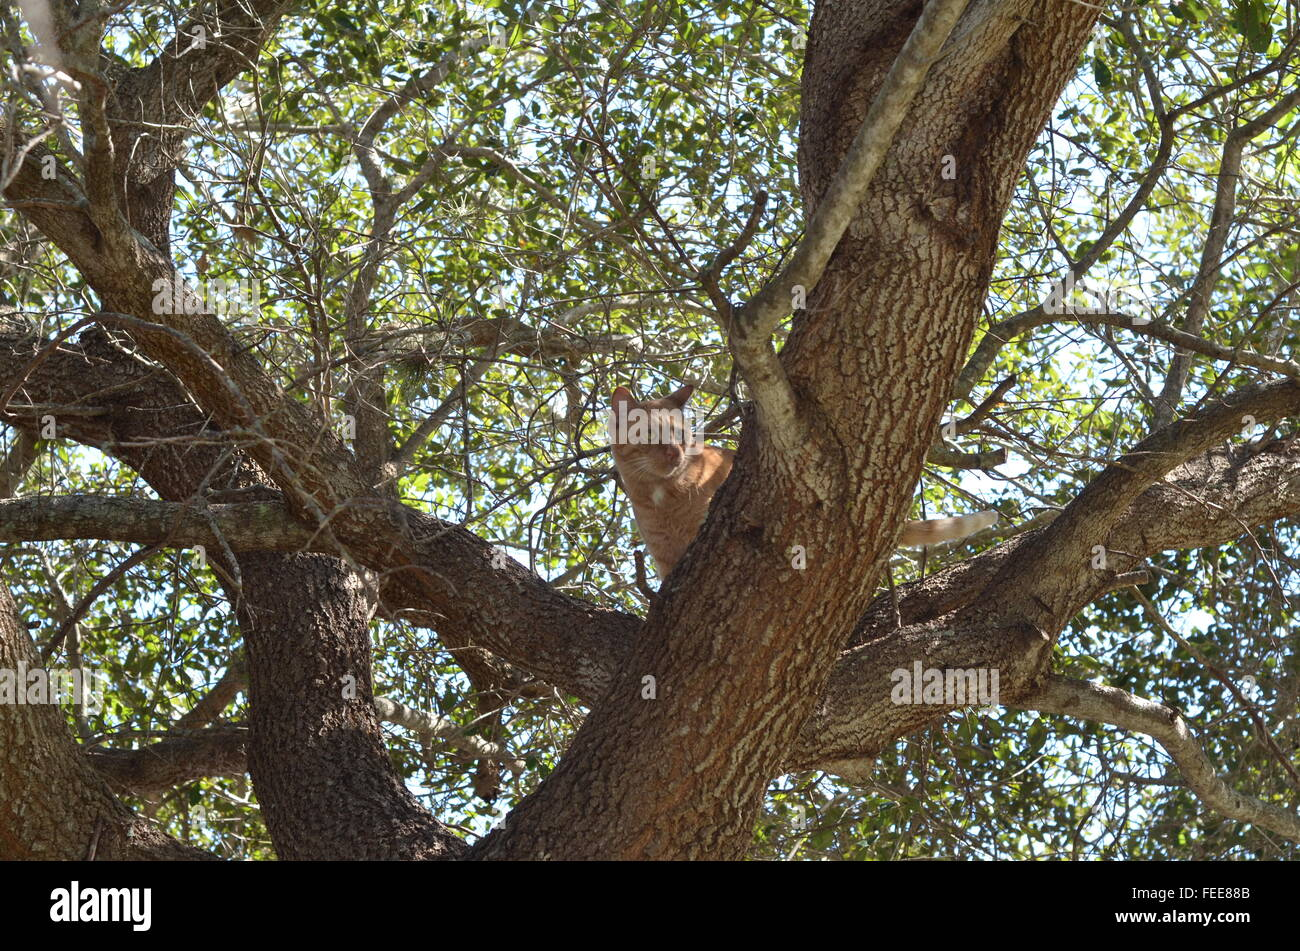 tree, orange tabby, found, hunted, food, healthy, curious, attention, nature, blue skies, oak tree, question, chill, - Stock Image